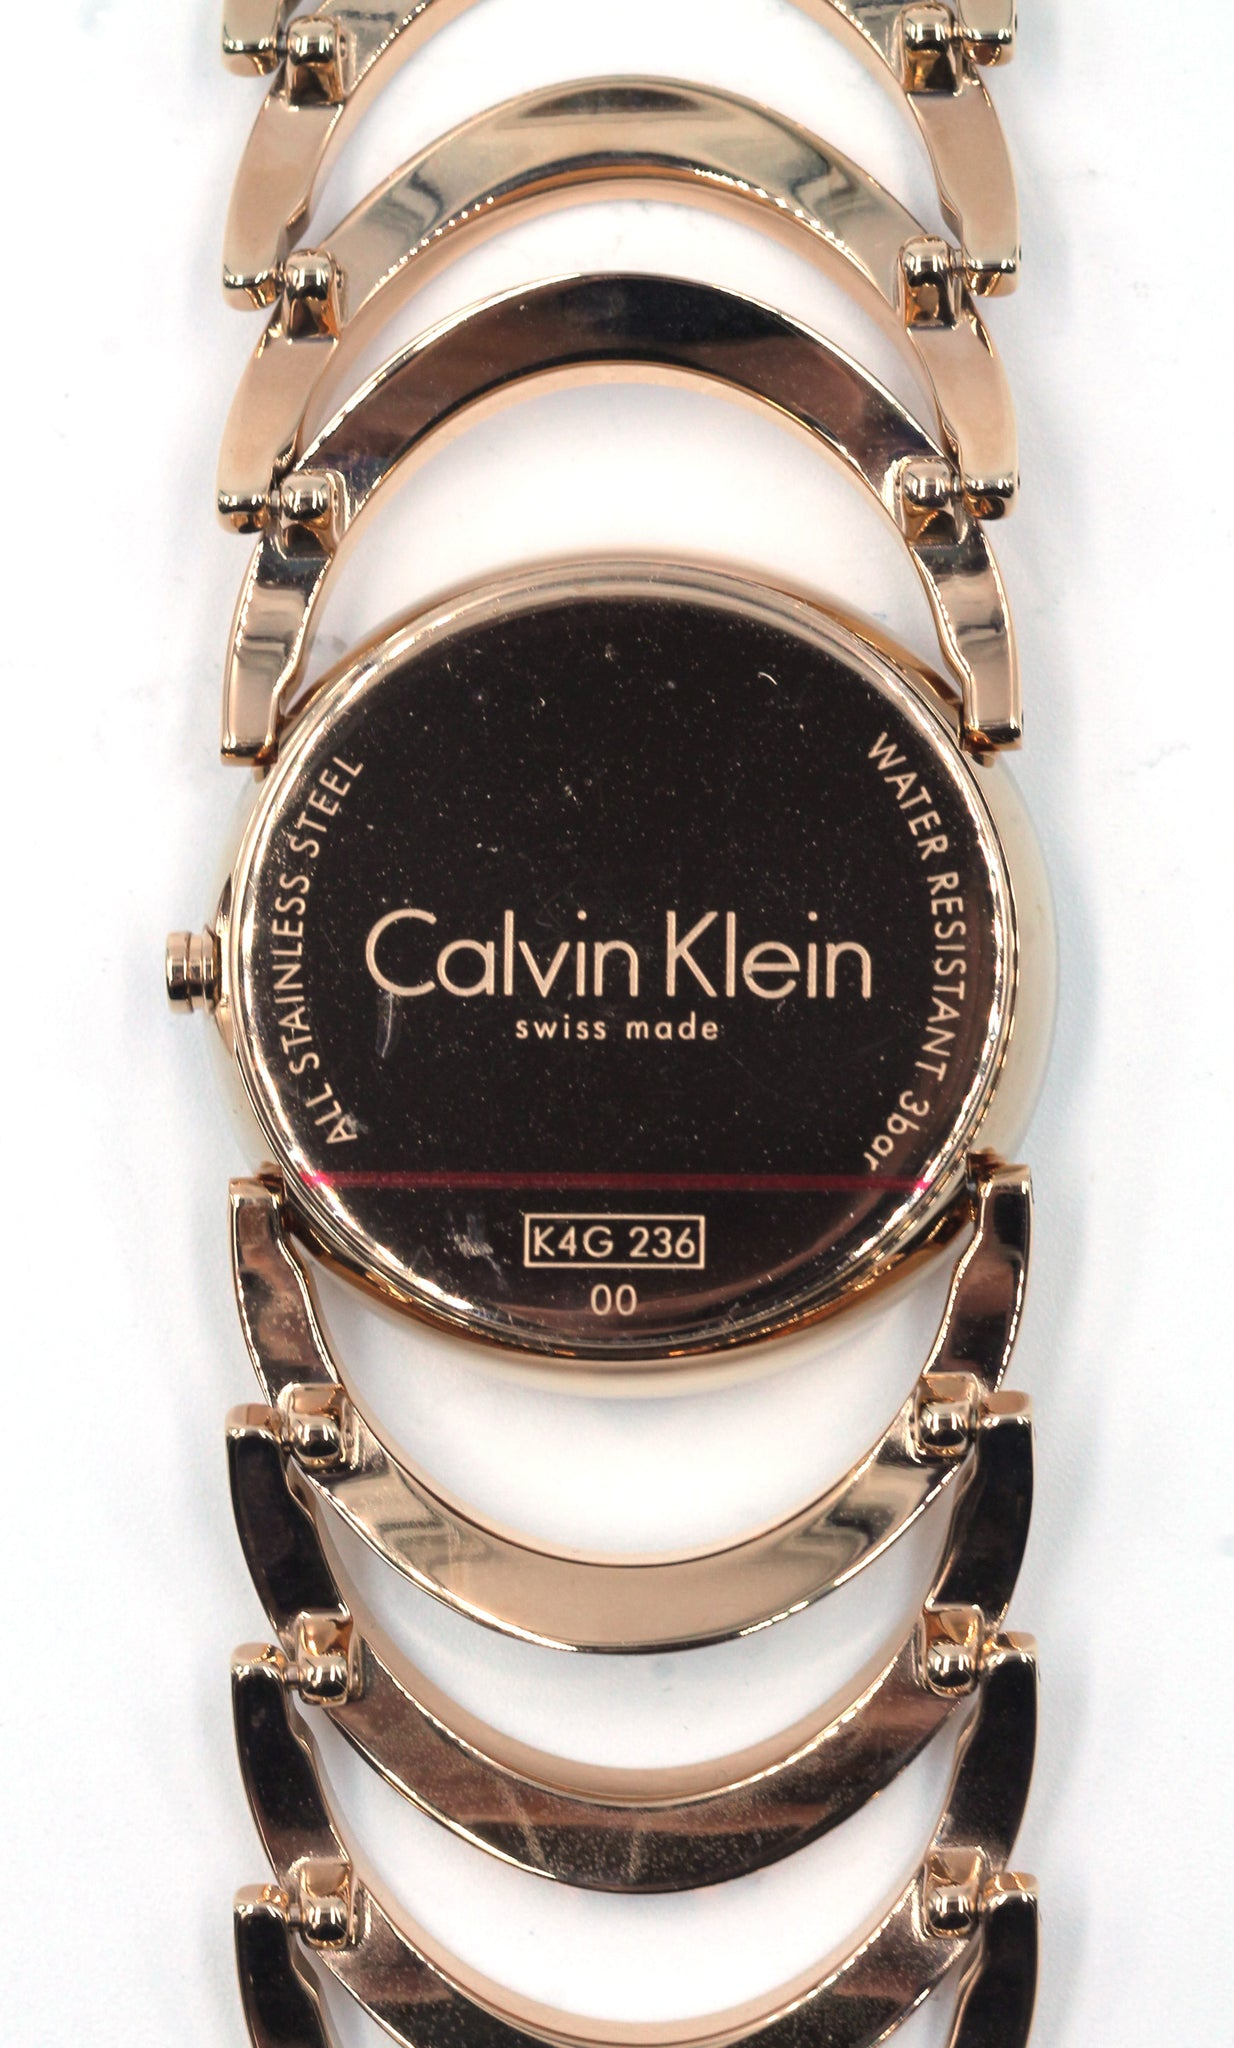 Calvin Klein Watch, SALE